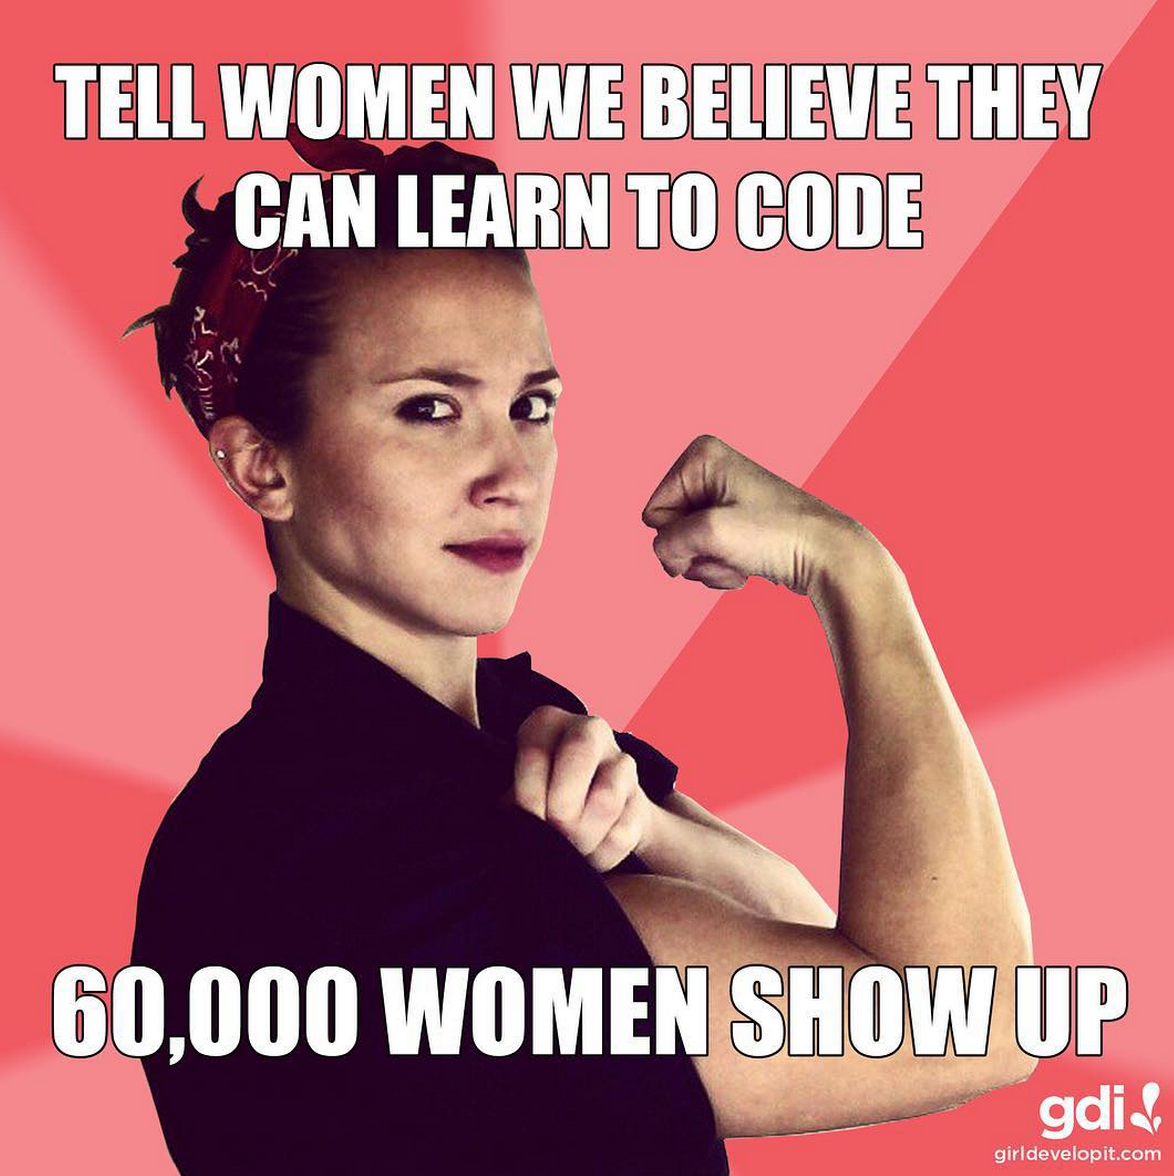 #gdisummit15 #girldevelopit #womenintech https://t.co/sOpjuSVJqv